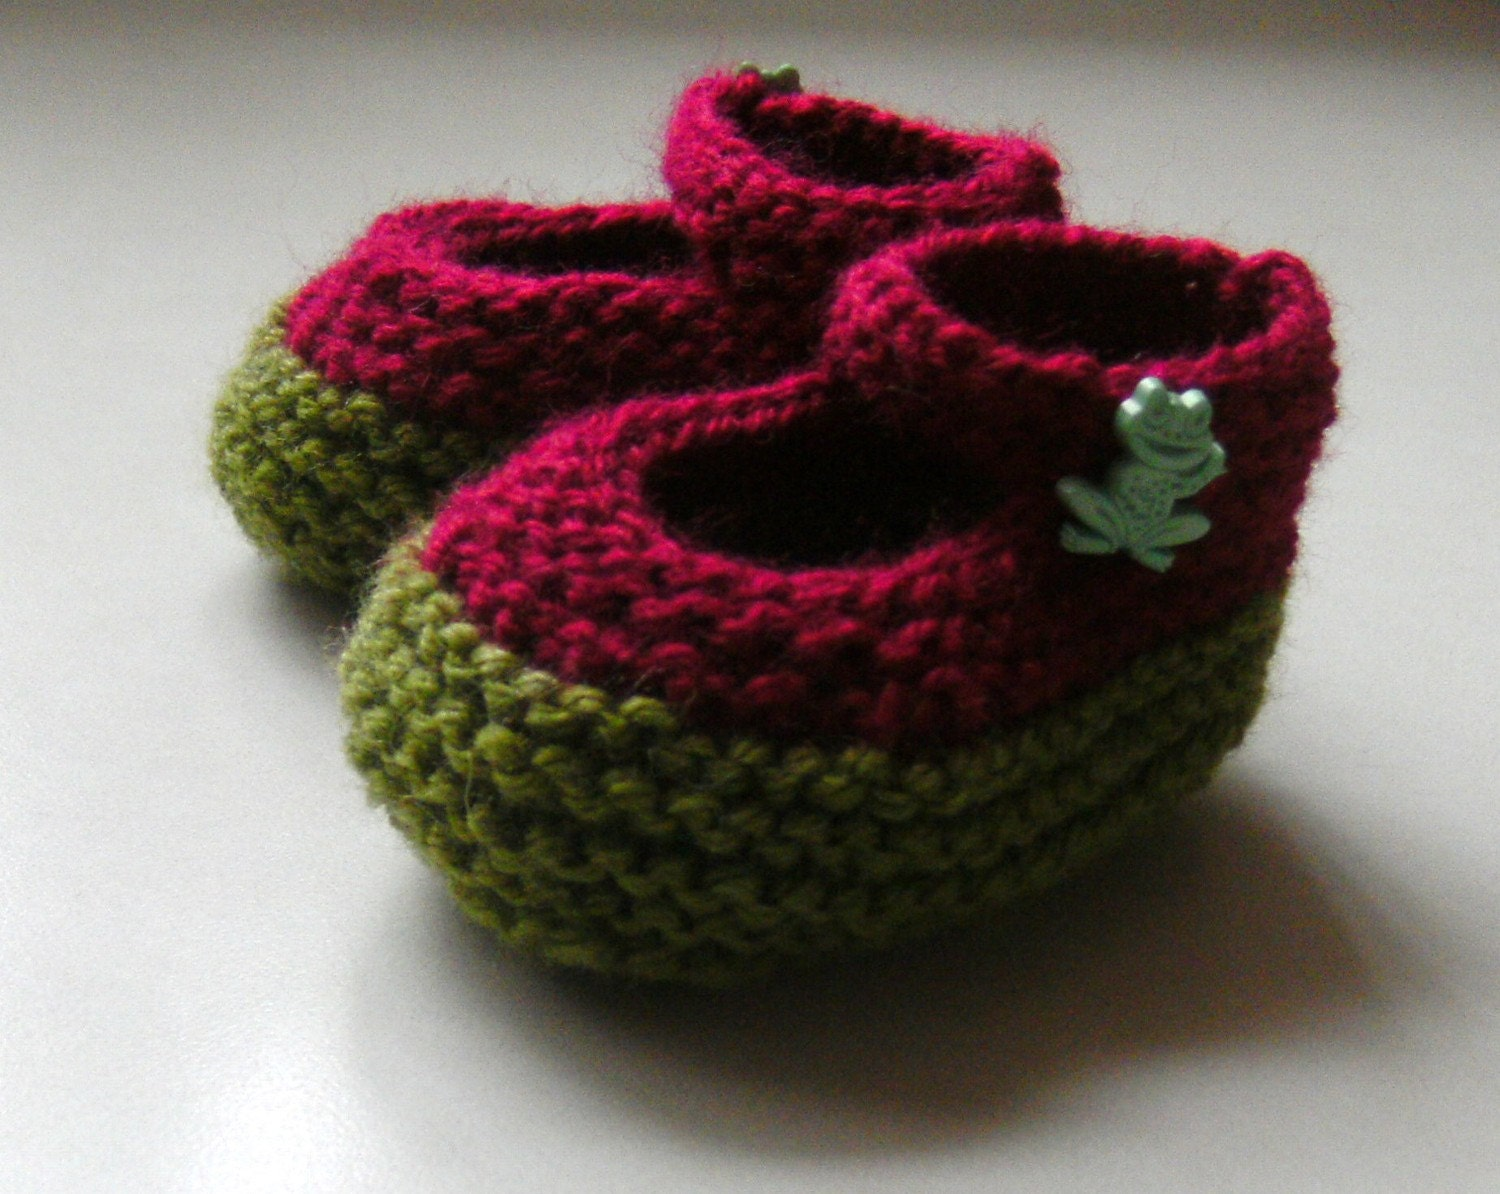 Hand Knitted Red and Green Baby Booties Mary by KnitAndCrochet2009